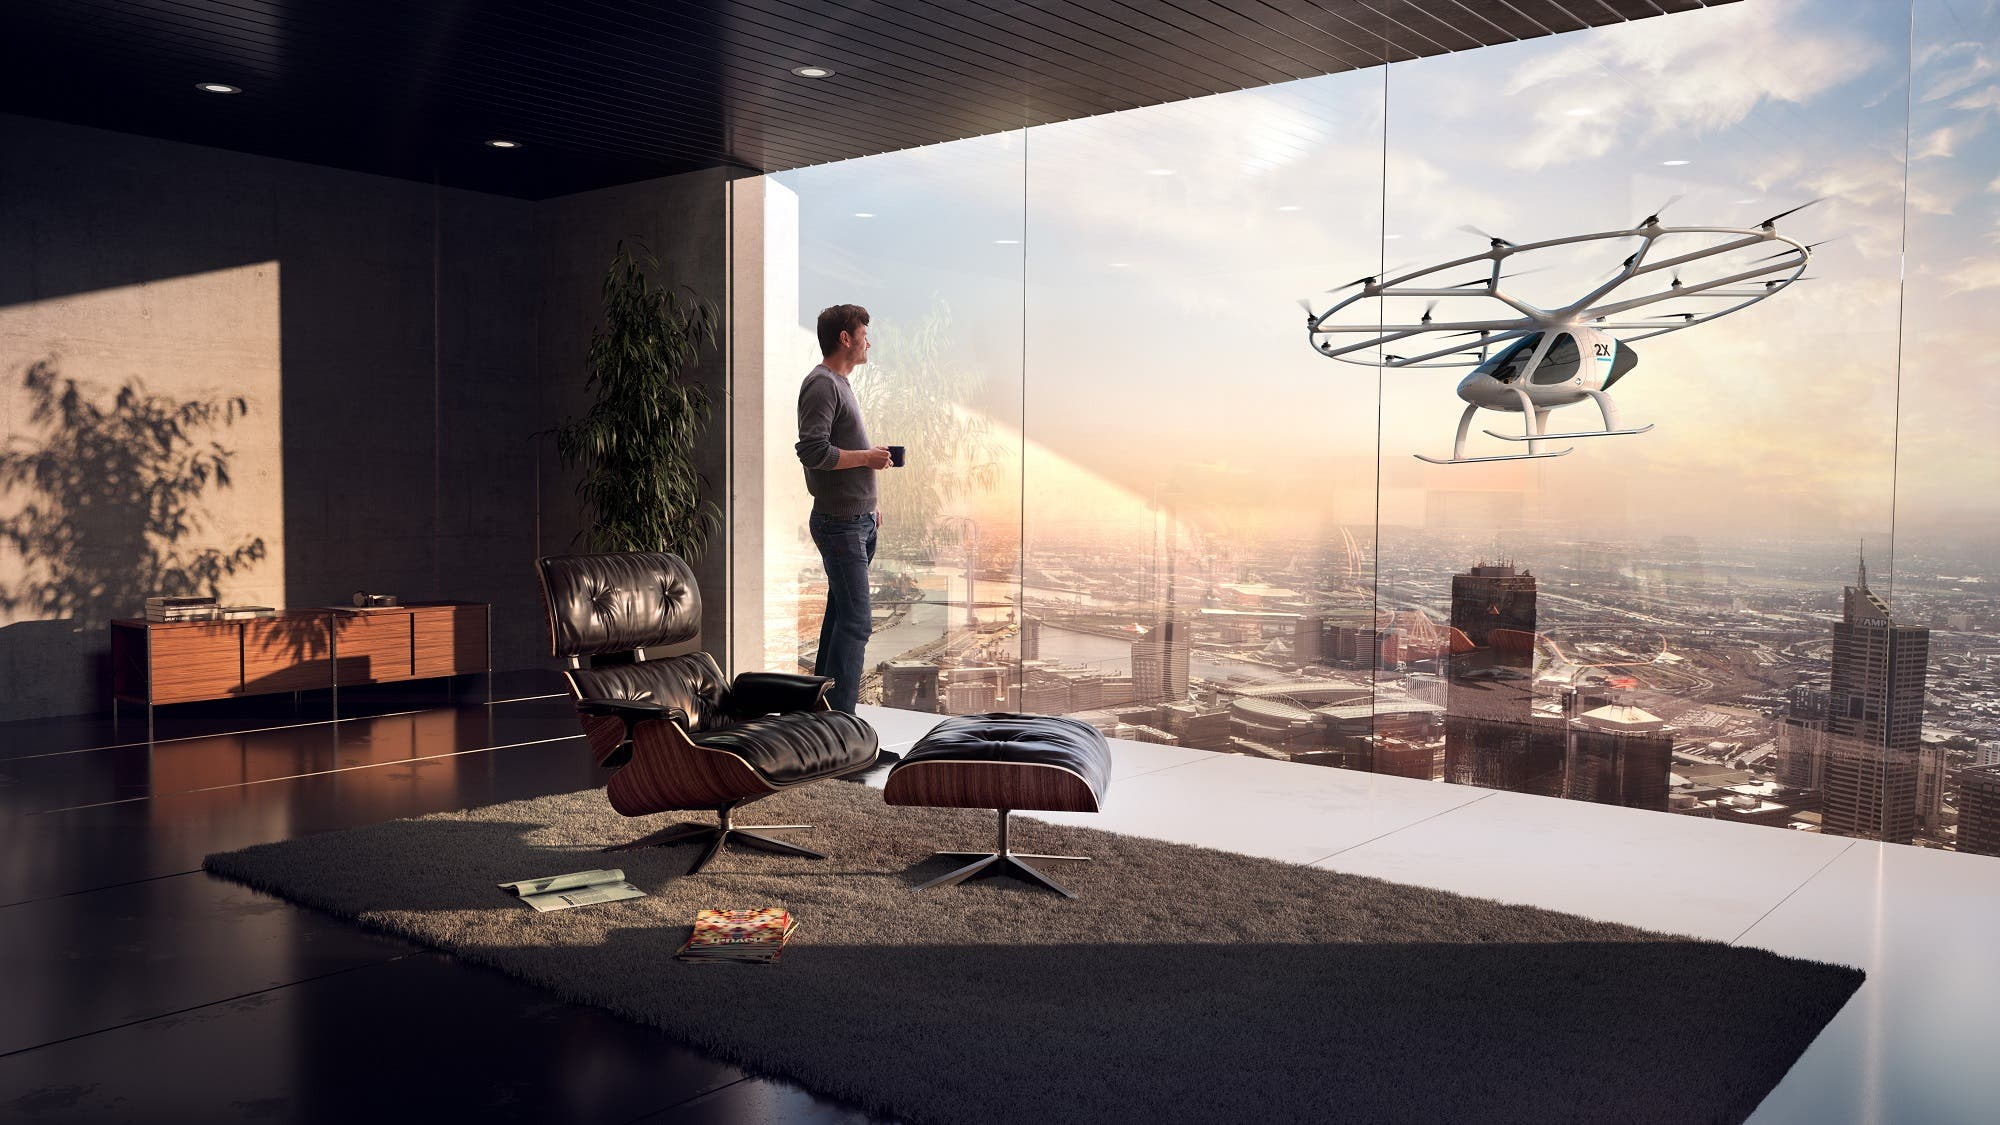 The autonomous air taxi will have a reduuced noise system. (Courtesy: Volocopter)